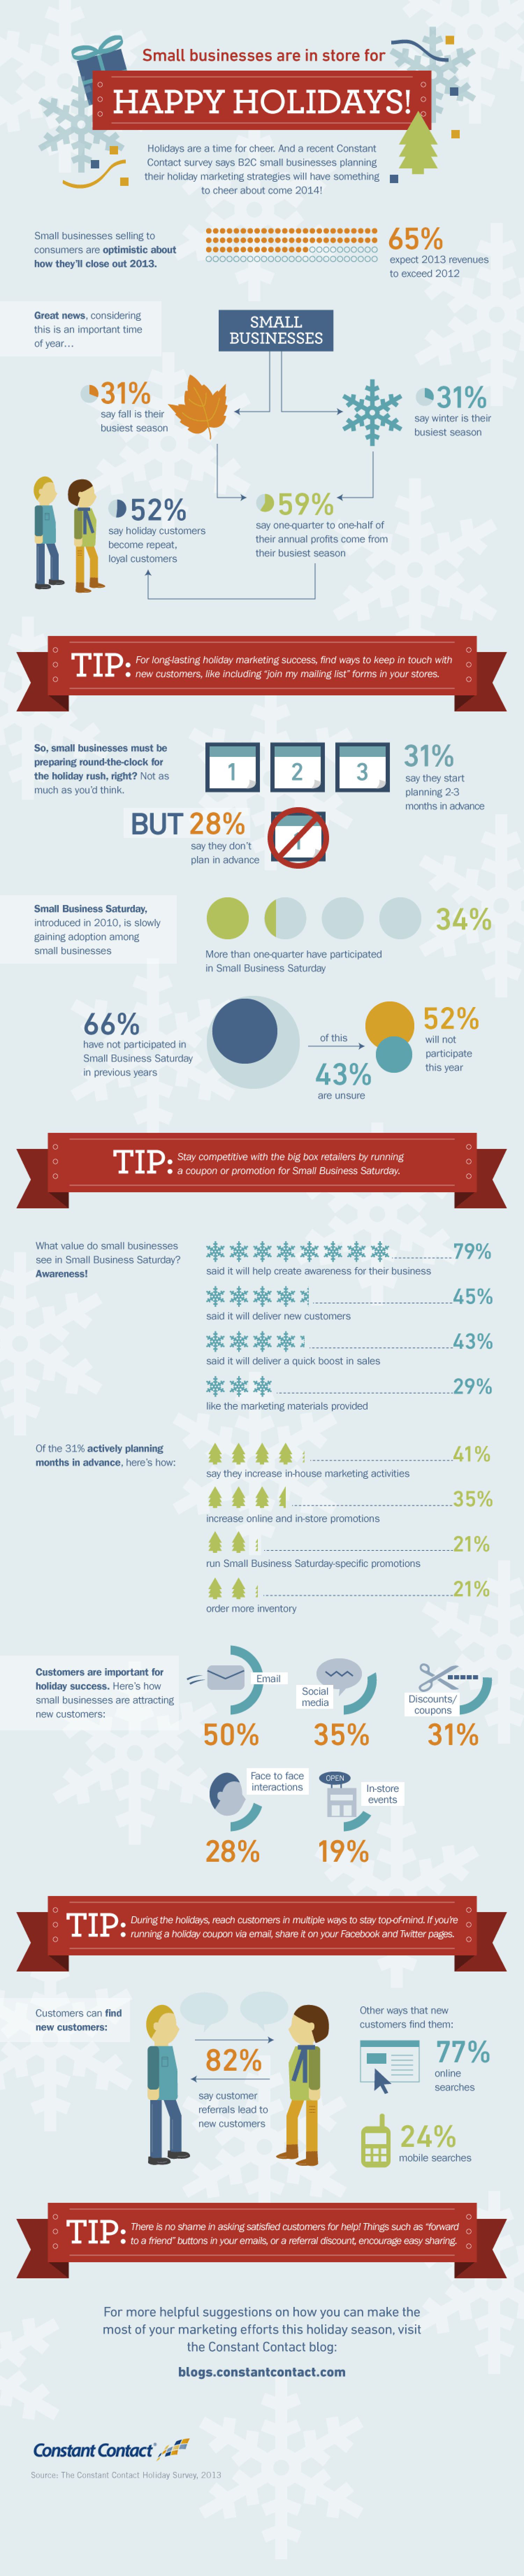 Small Business Holidays Infographic